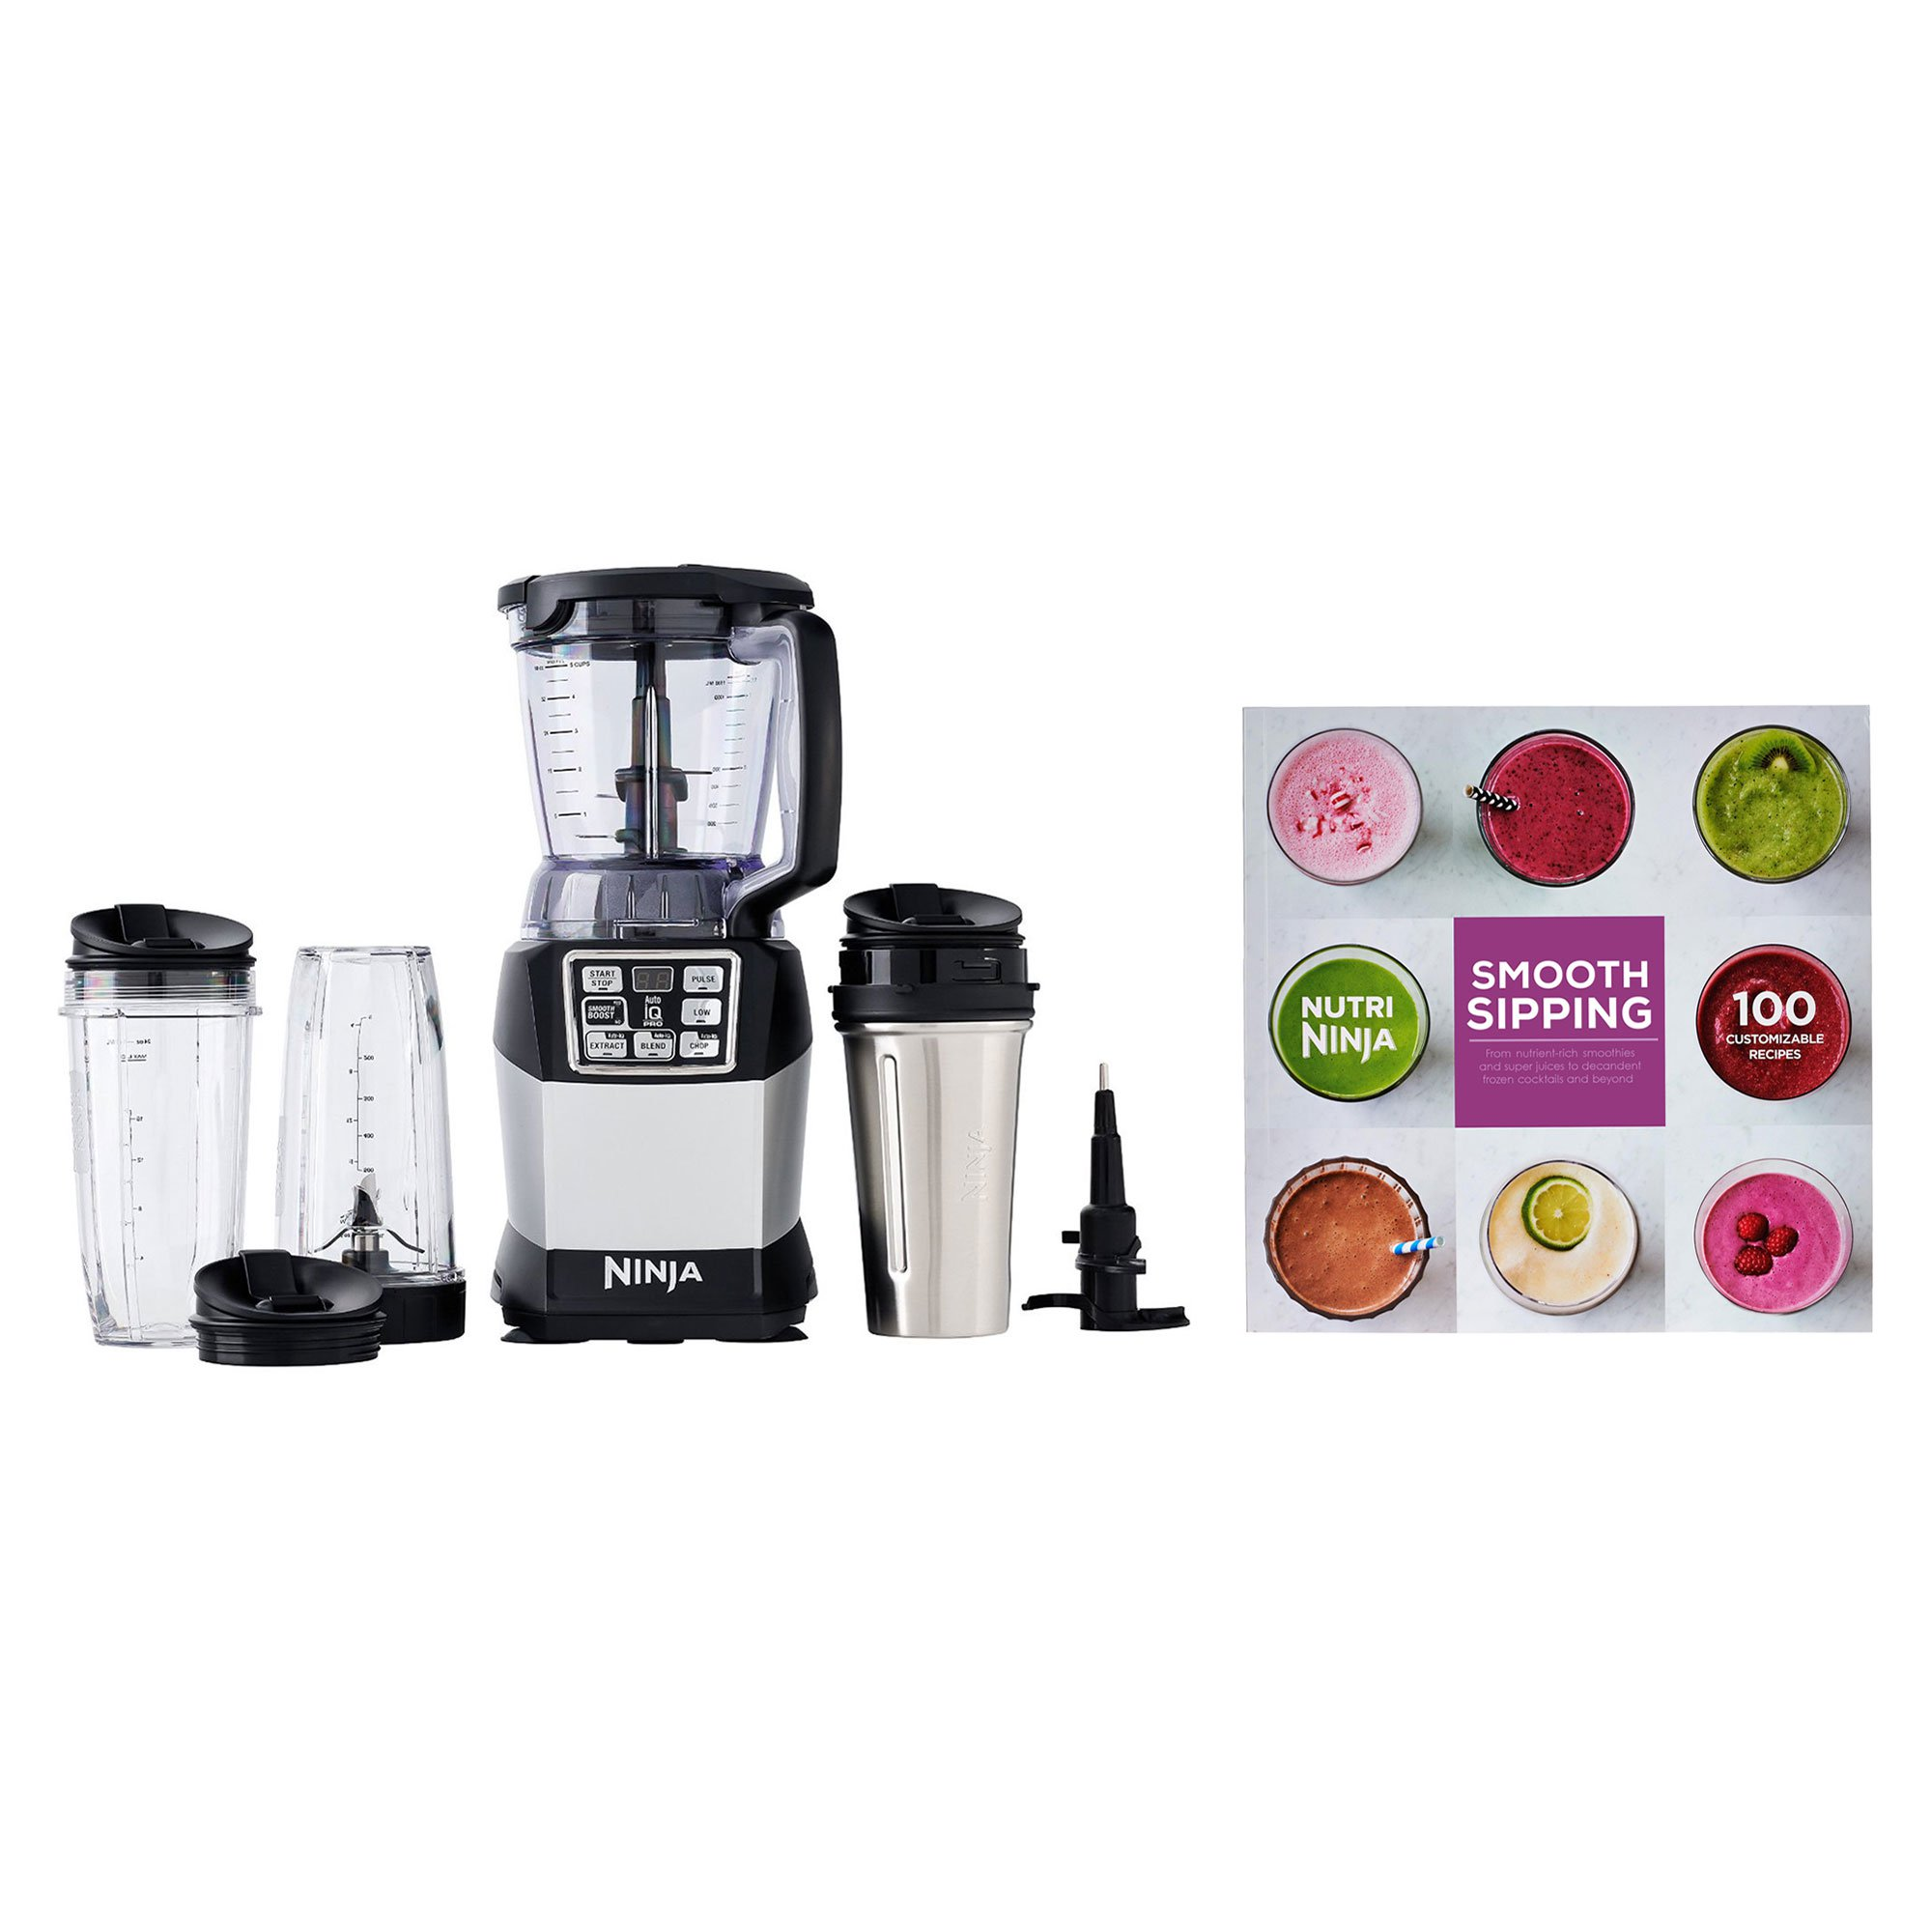 Ninja Auto-IQ Nutri Ninja 40 Ounce Compact Blender System with 100 Recipe Book